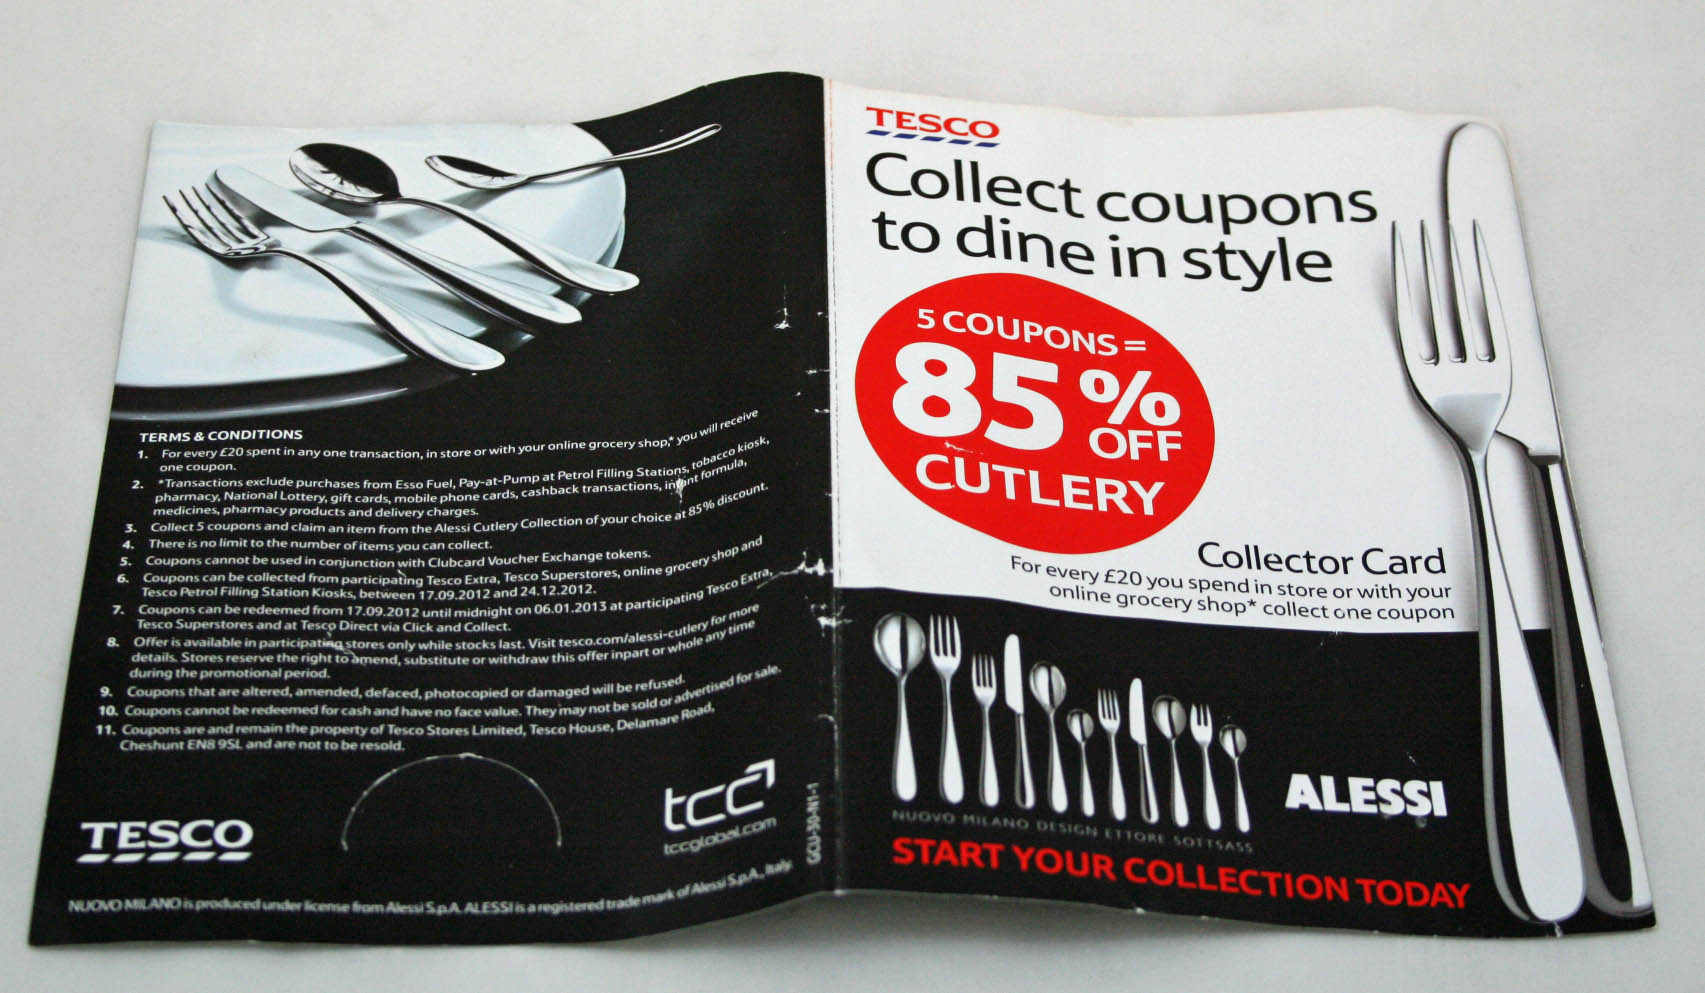 Alessi Silverware Alessi Cutlery Purchased From Tesco Corrodes Like Rust